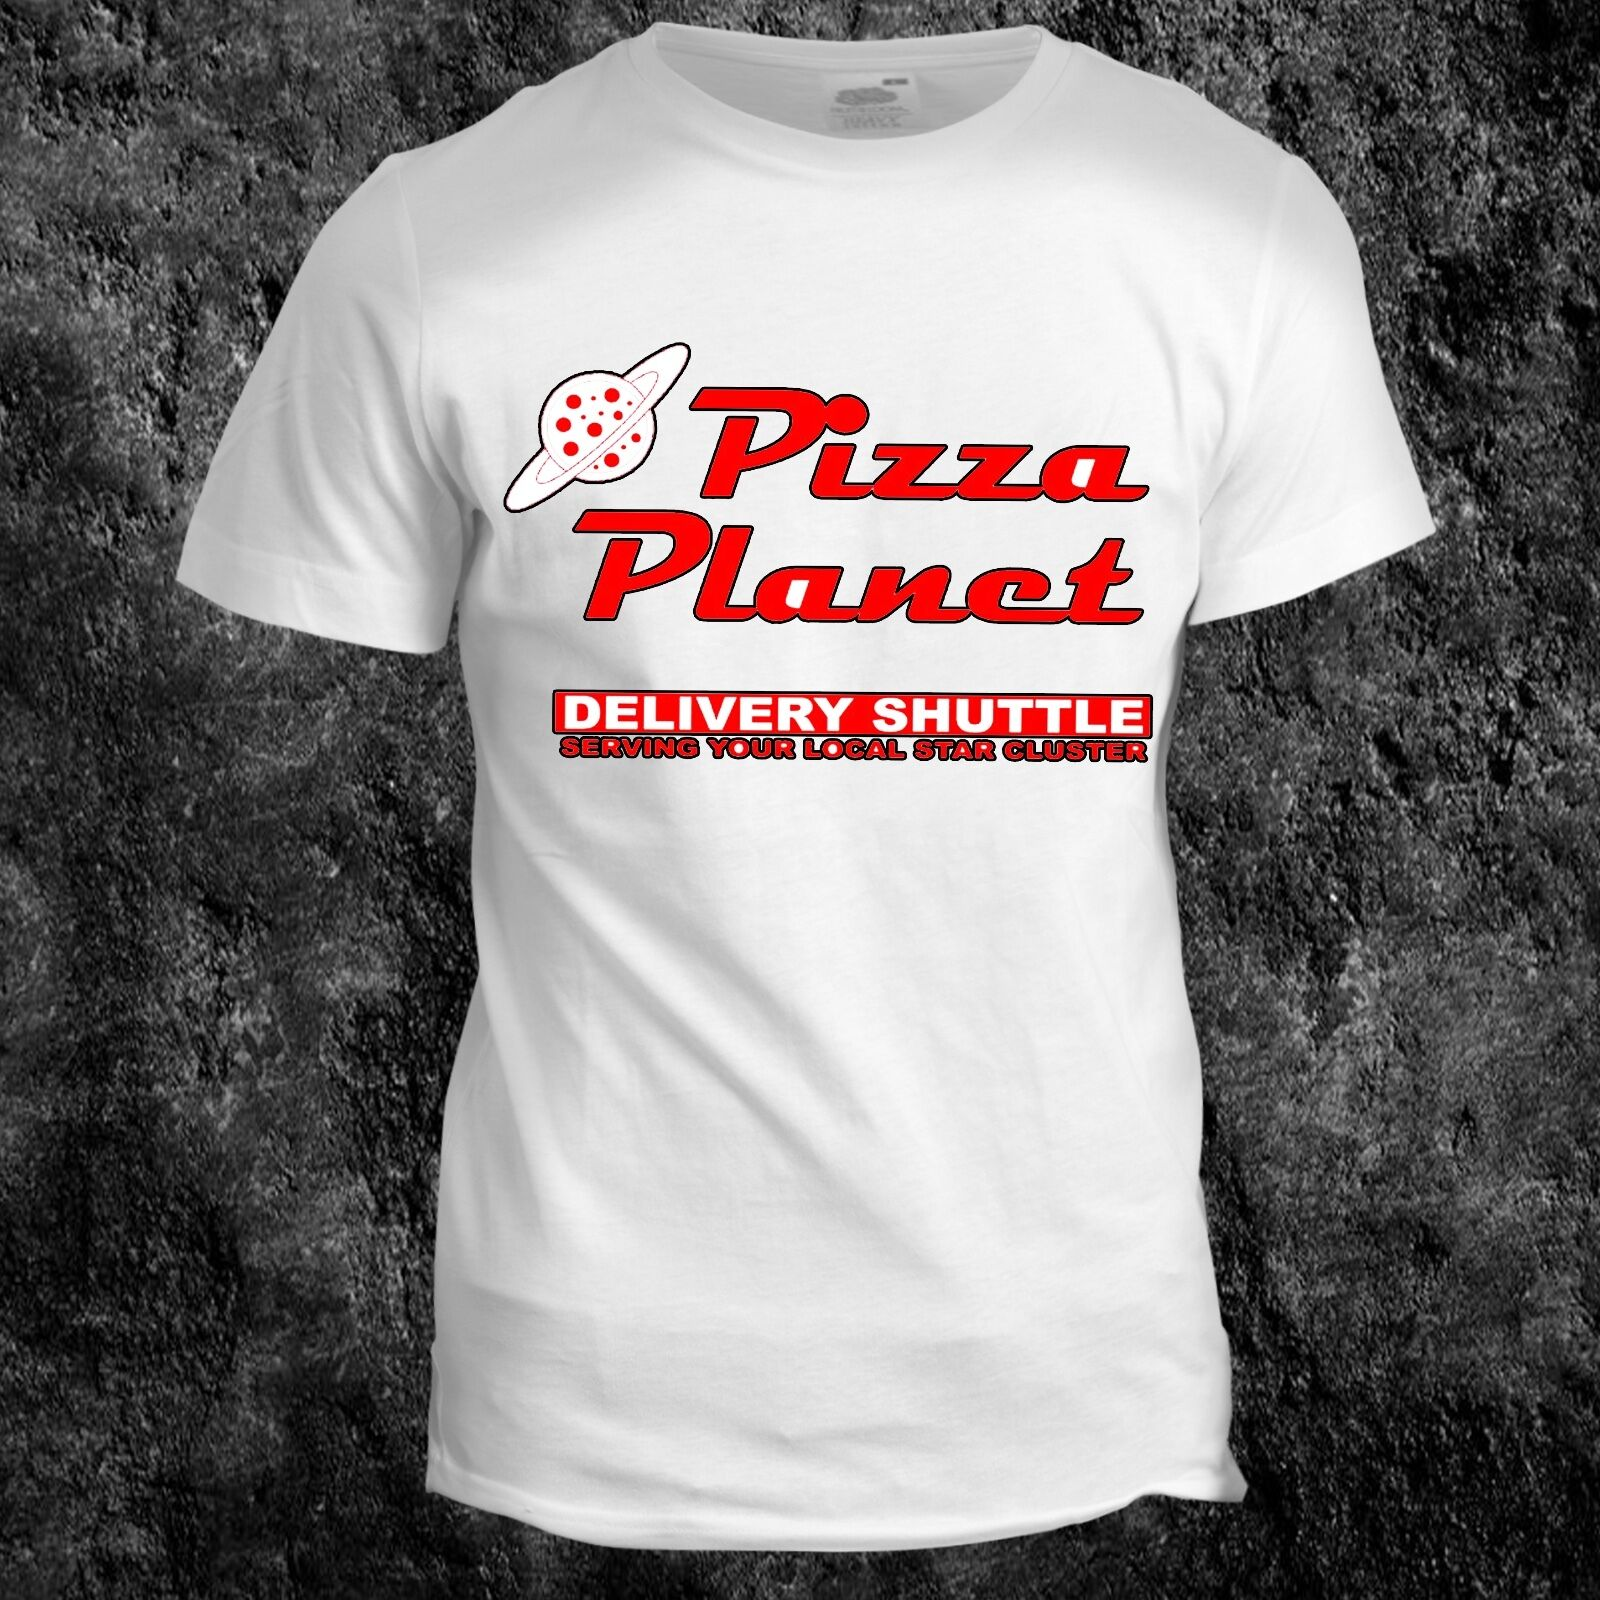 Toy Story Pizza Planet Inspired Film Cartoon Buzz Movie Kids 90s T shirt image